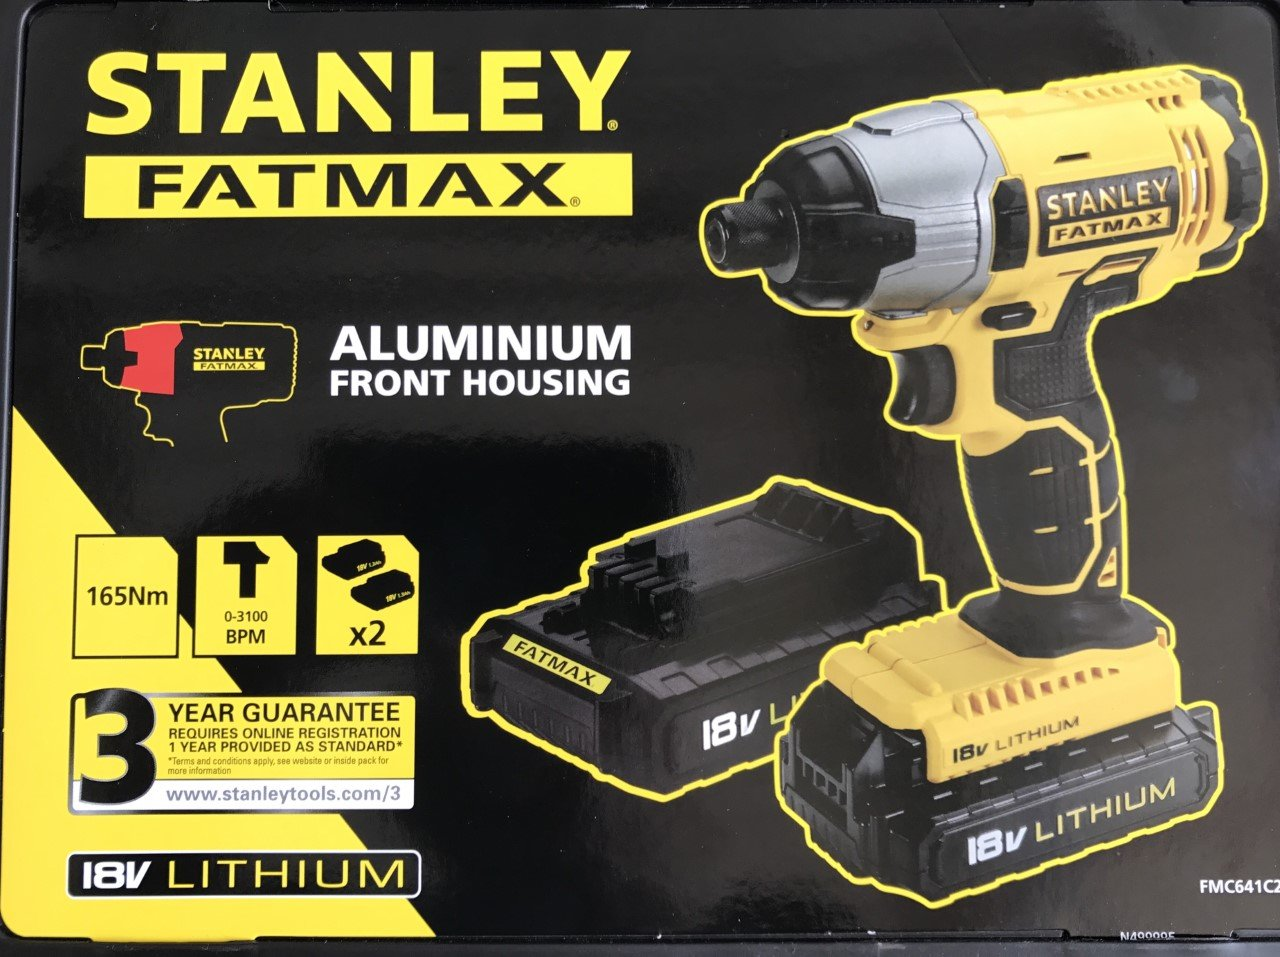 STANLEY FATMAX 18V IMPACT DRIVER X2 BATTERIES CHARGER IN HEAVY DUTY CASE**FREE 100 PIECE ACCESSORY SET***